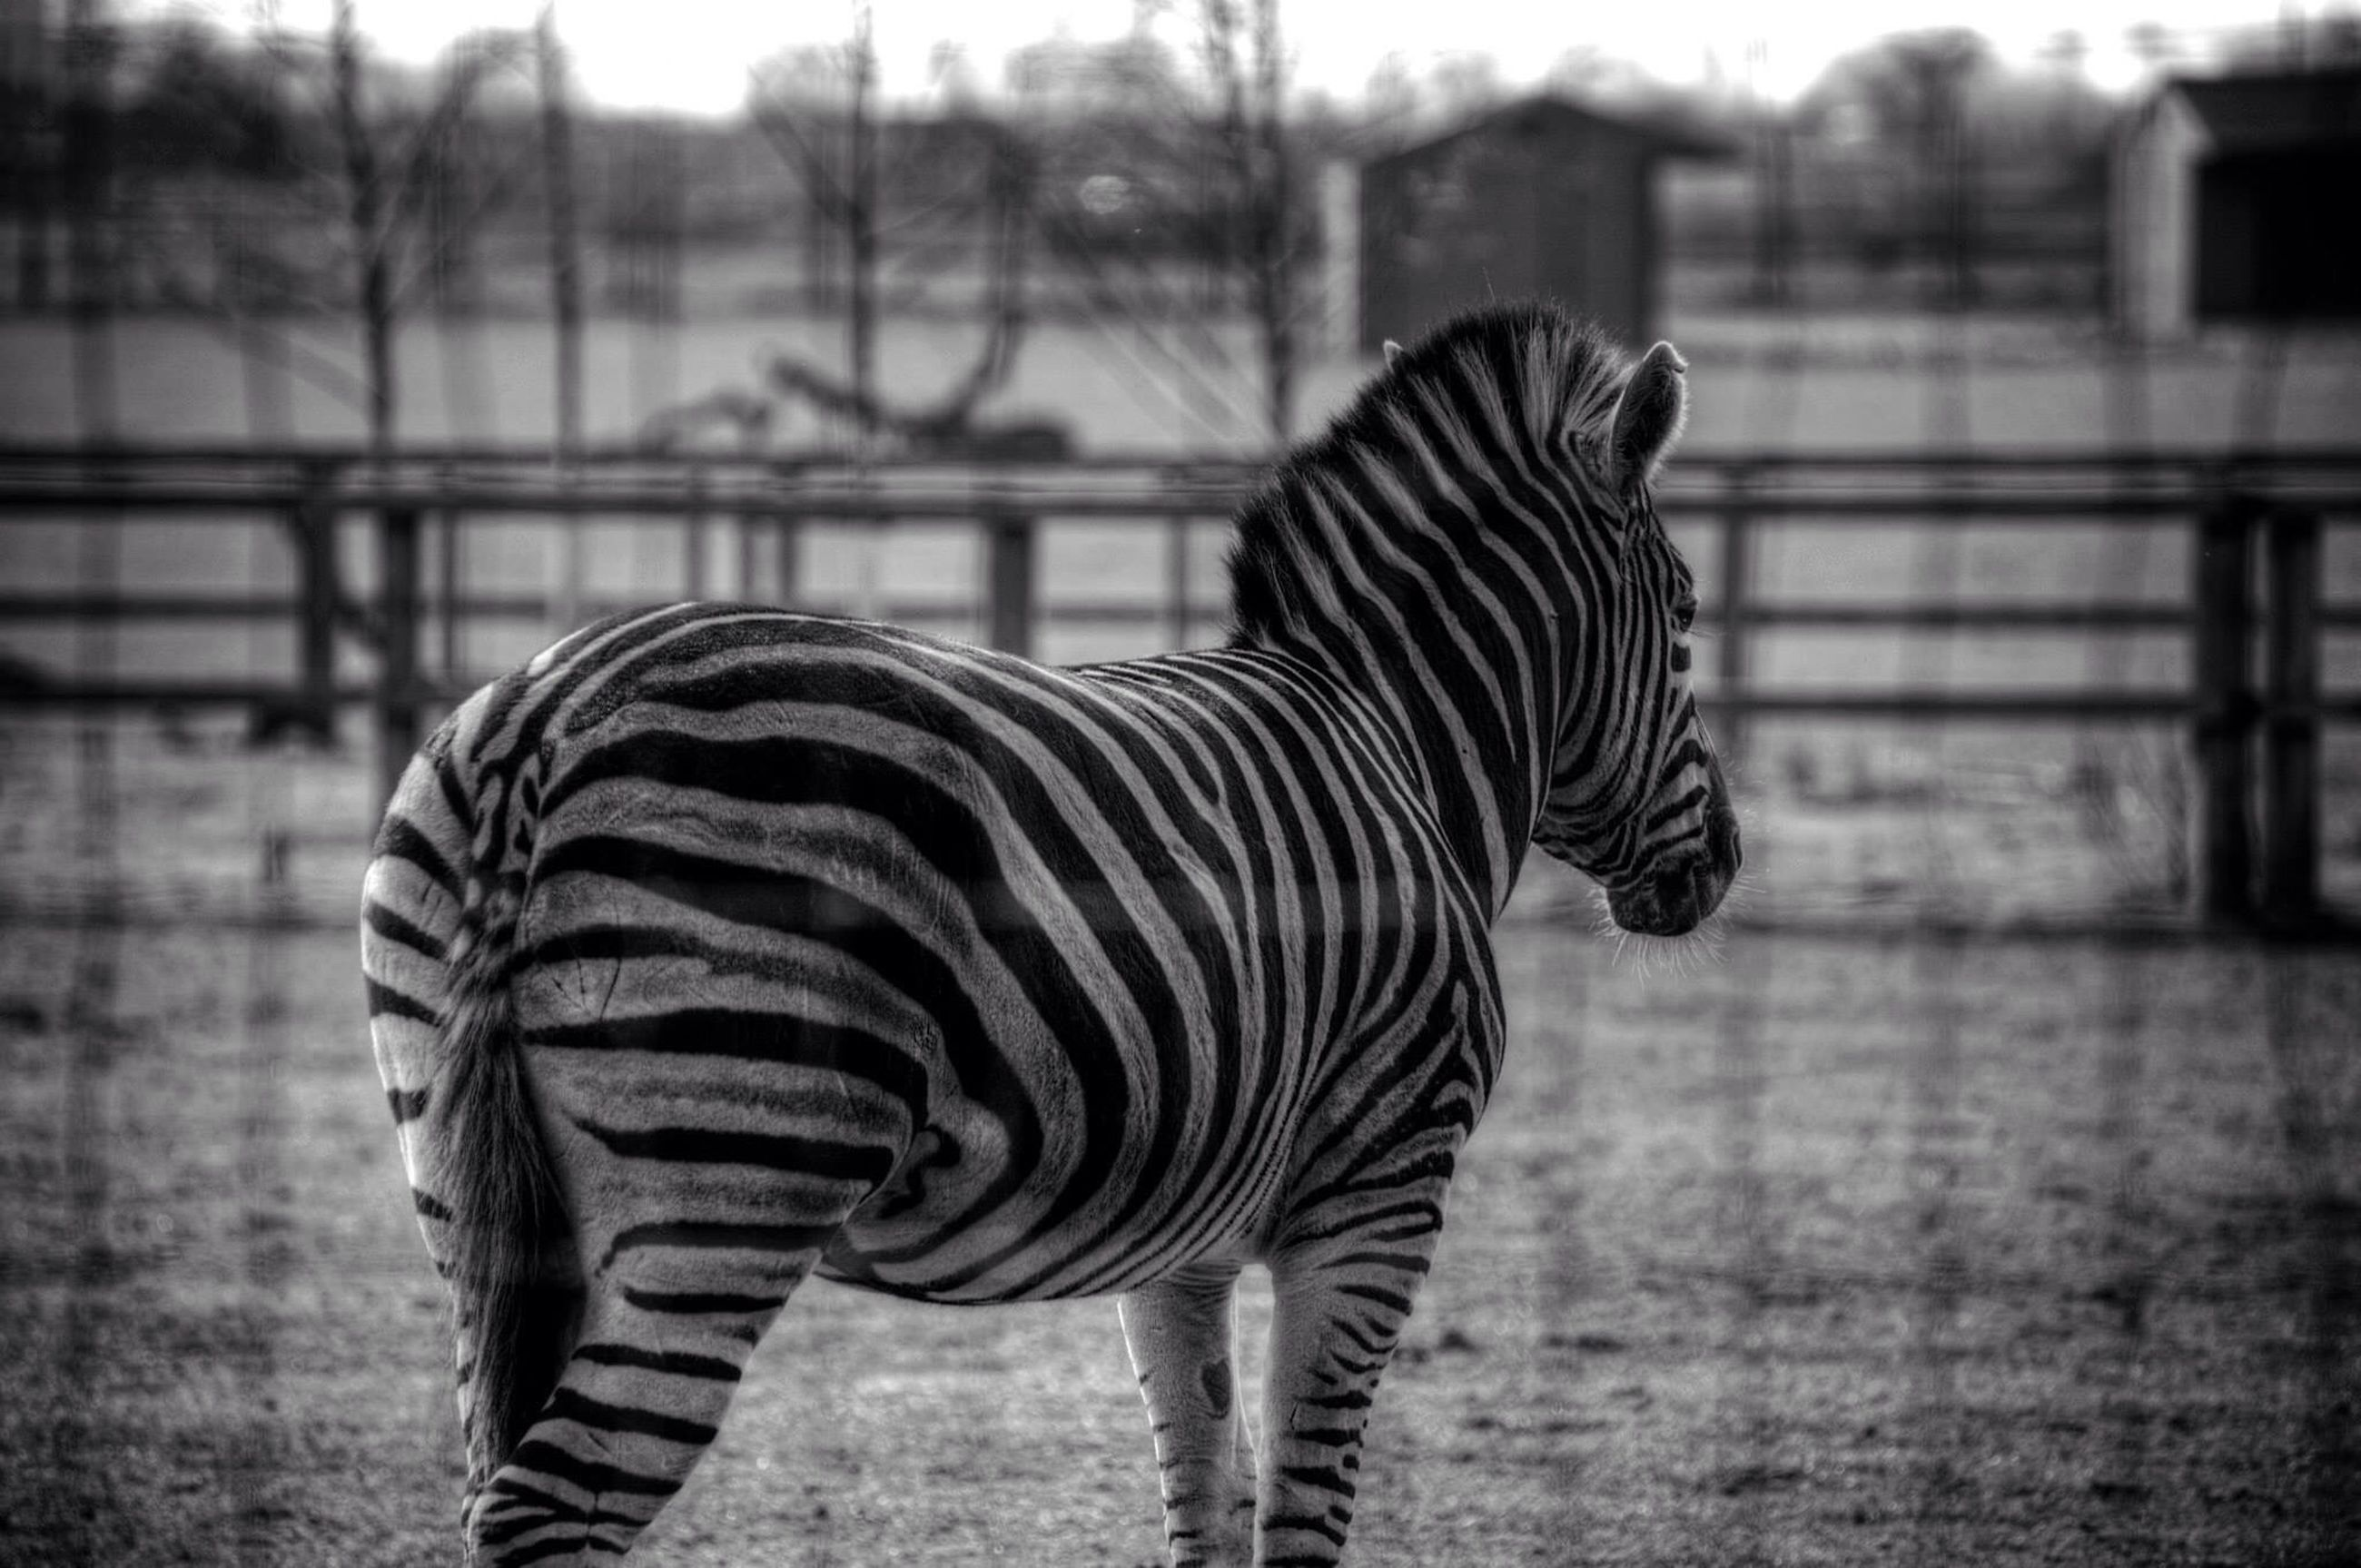 animal themes, animals in the wild, focus on foreground, one animal, wildlife, zebra, striped, animal markings, side view, close-up, standing, field, zoo, natural pattern, nature, outdoors, full length, safari animals, two animals, day